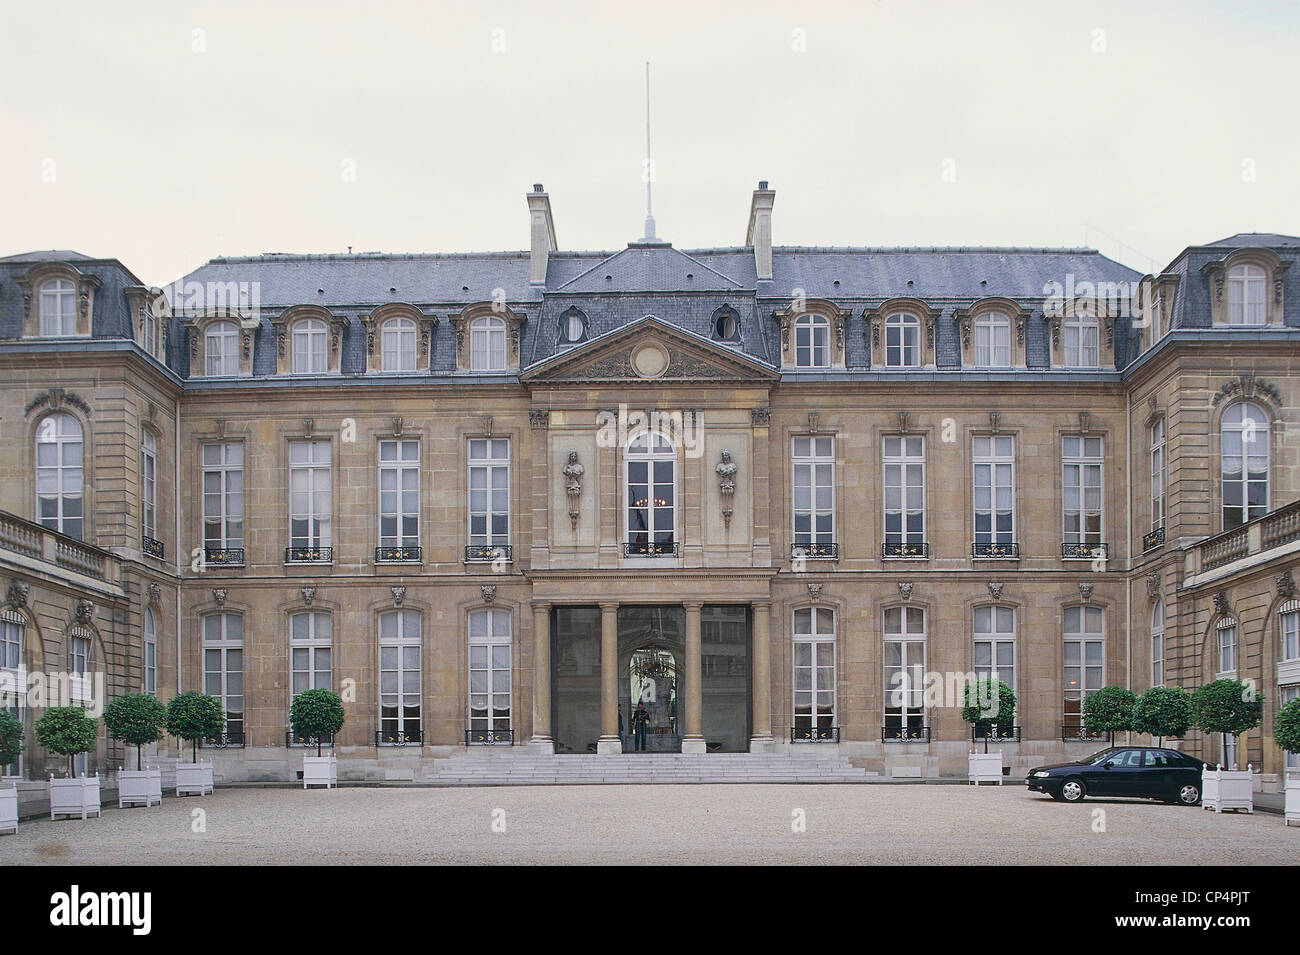 france paris elysee palace palais de l 39 elysee the official stock photo 48048752 alamy. Black Bedroom Furniture Sets. Home Design Ideas